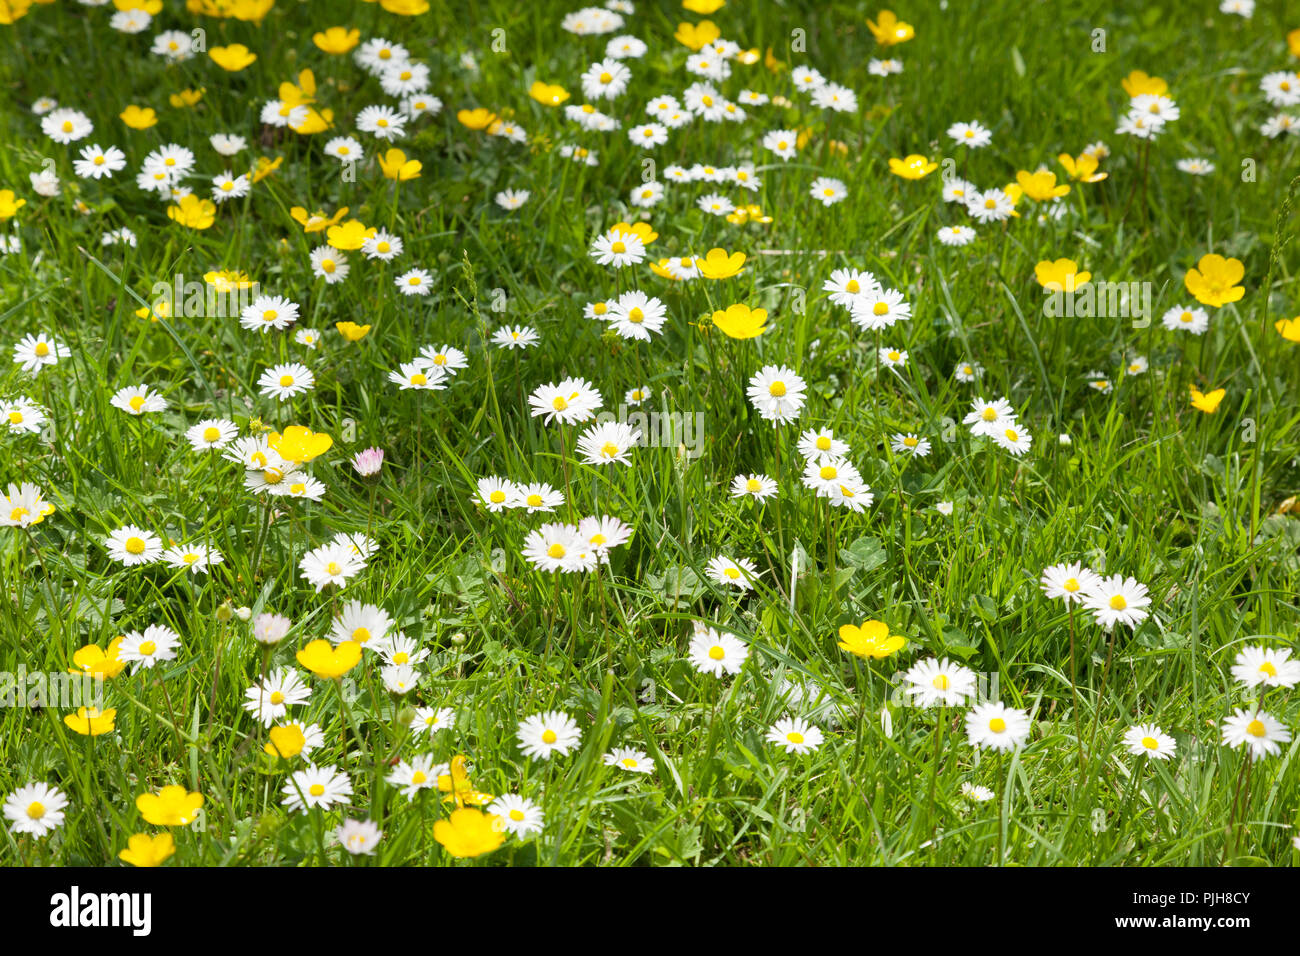 Buttercups and daisies growing in grass. - Stock Image